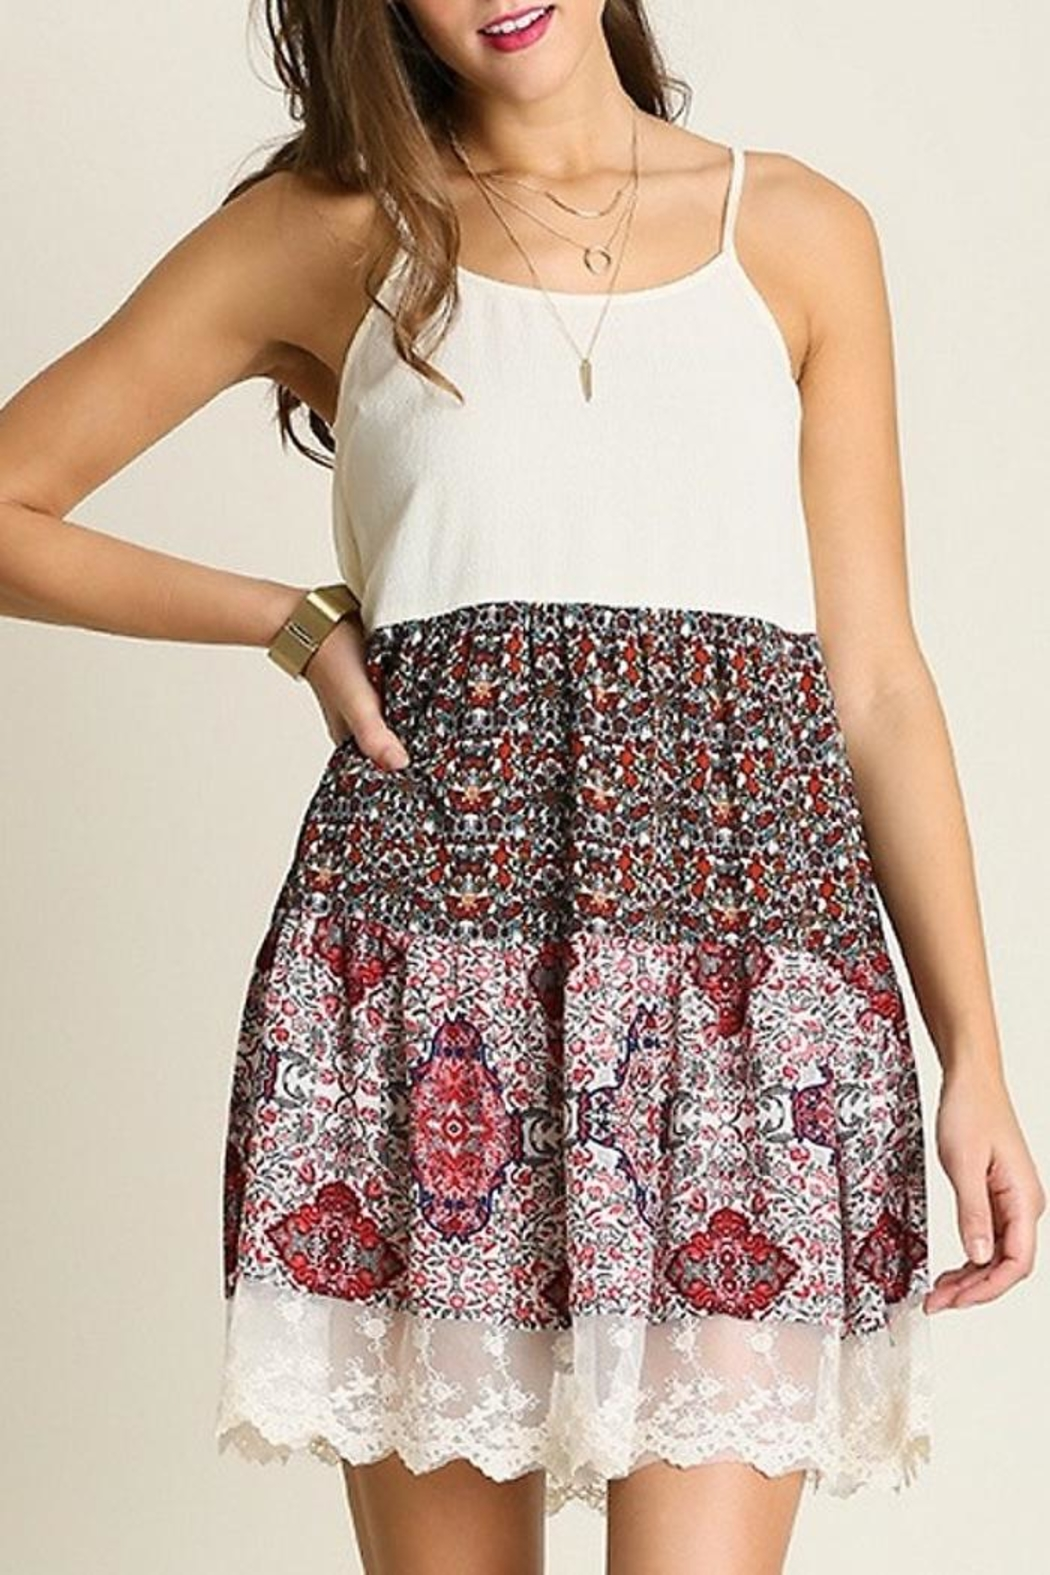 People Outfitter Country Print Dresses - Main Image